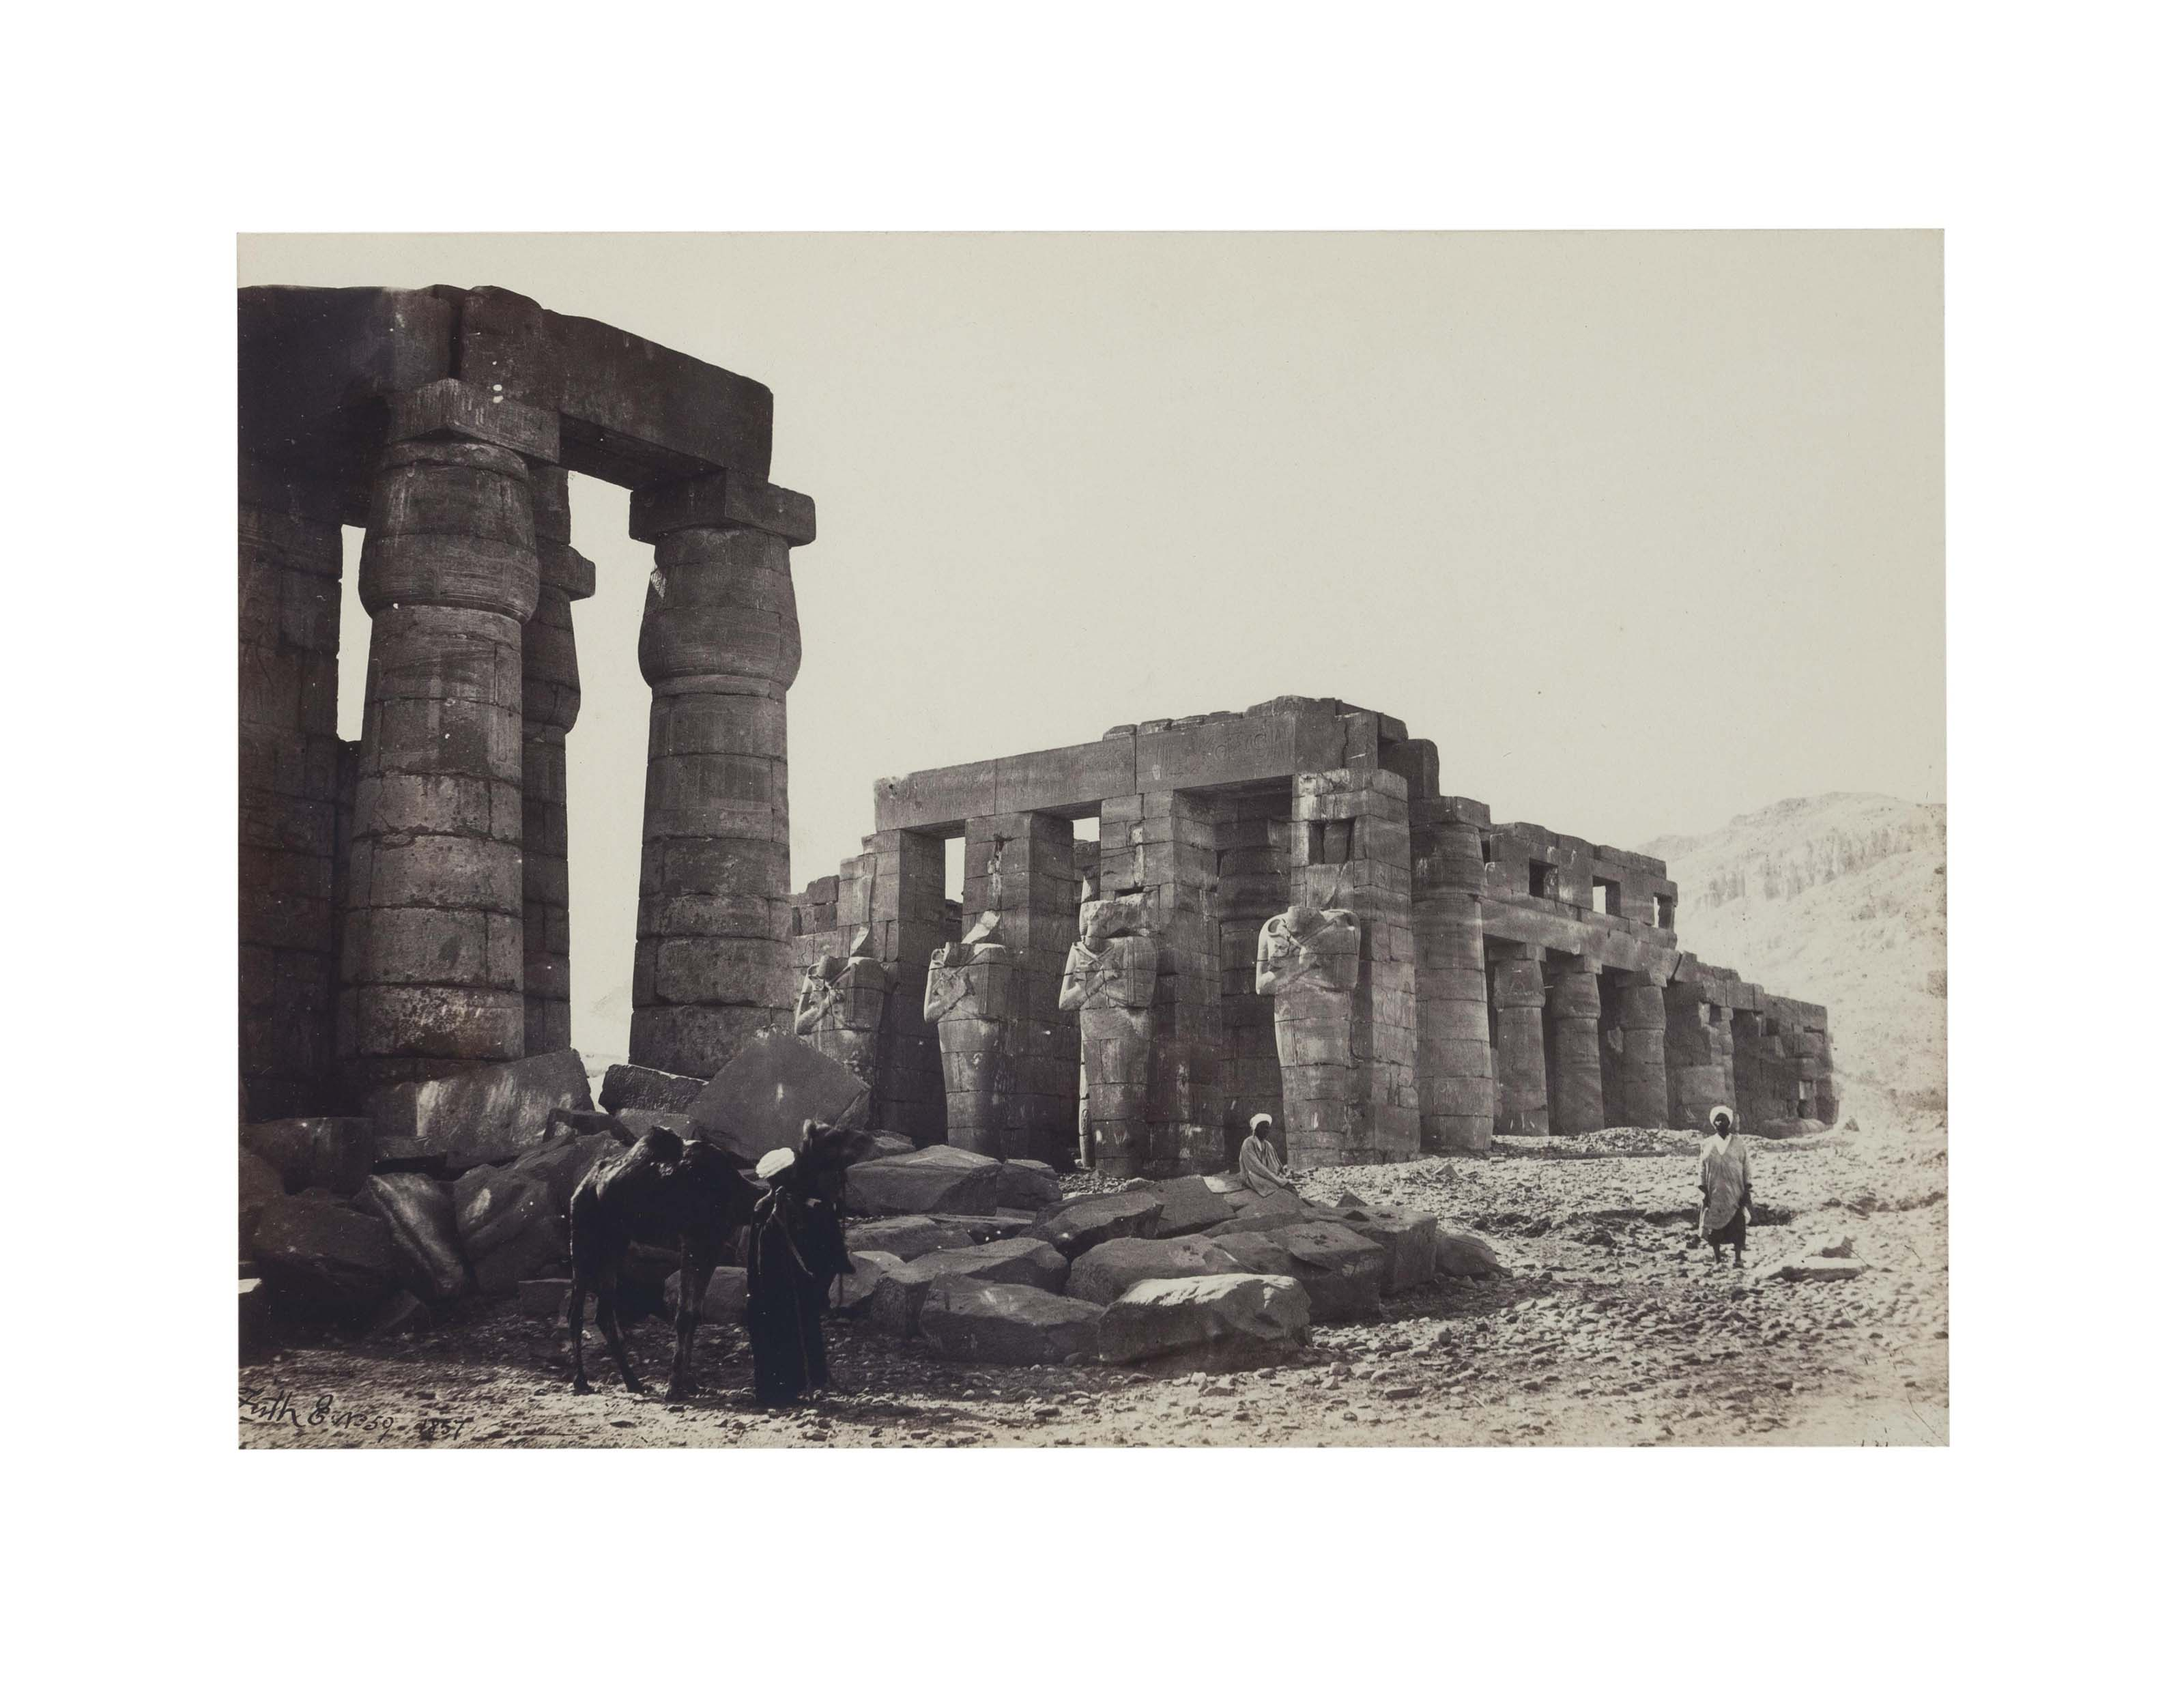 Colossi of Memnon, Thebes, 1857